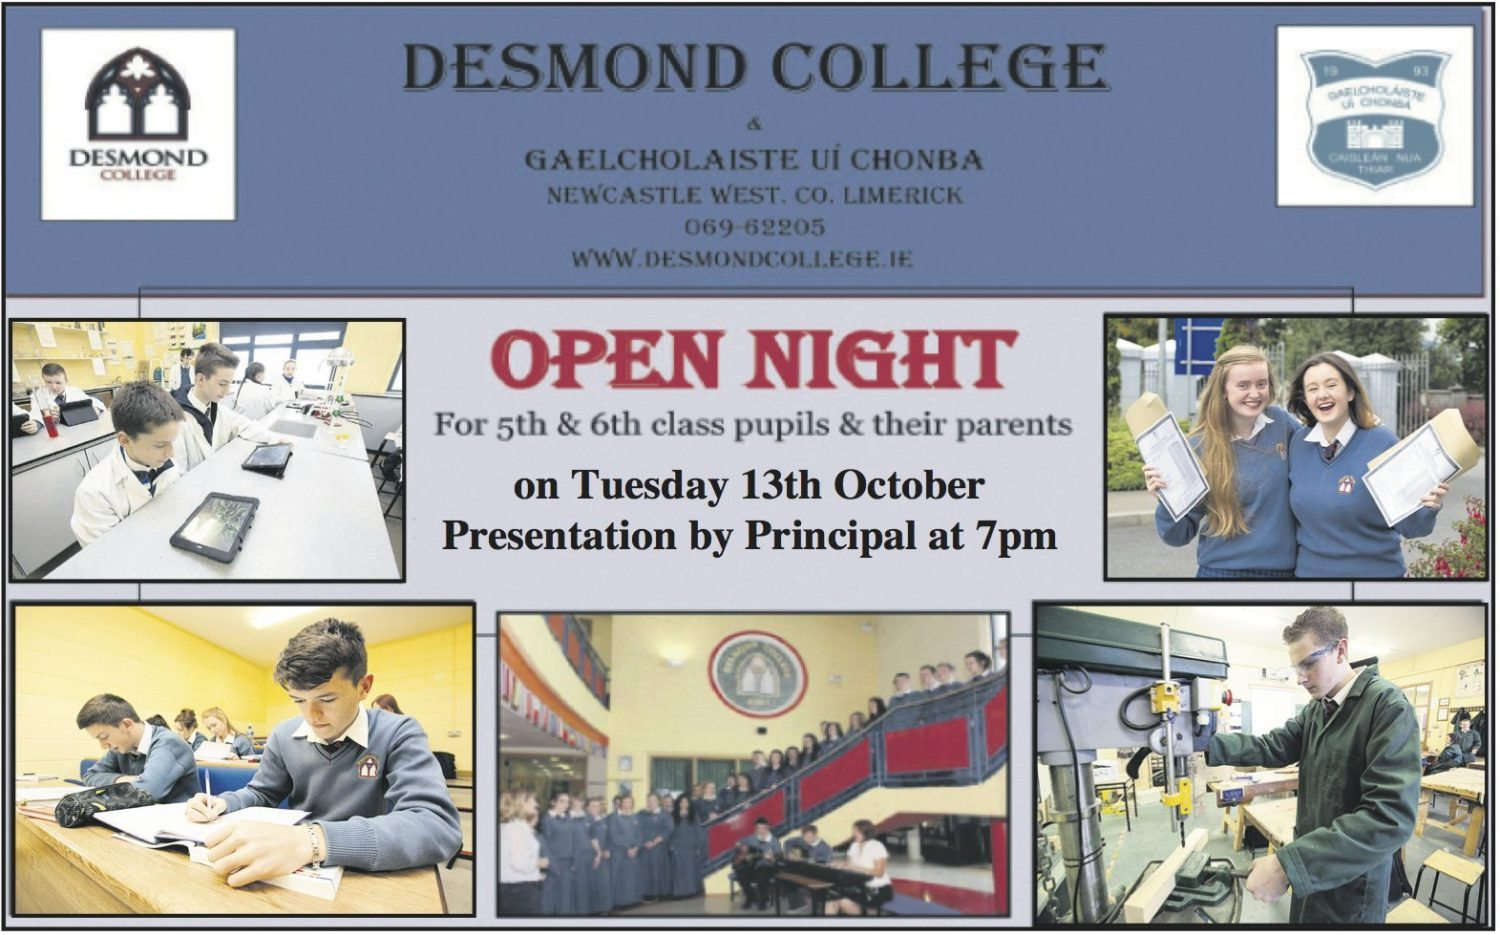 Desmond College Open Night: Tuesday 13th October : Presentation by the Principal at 7pm